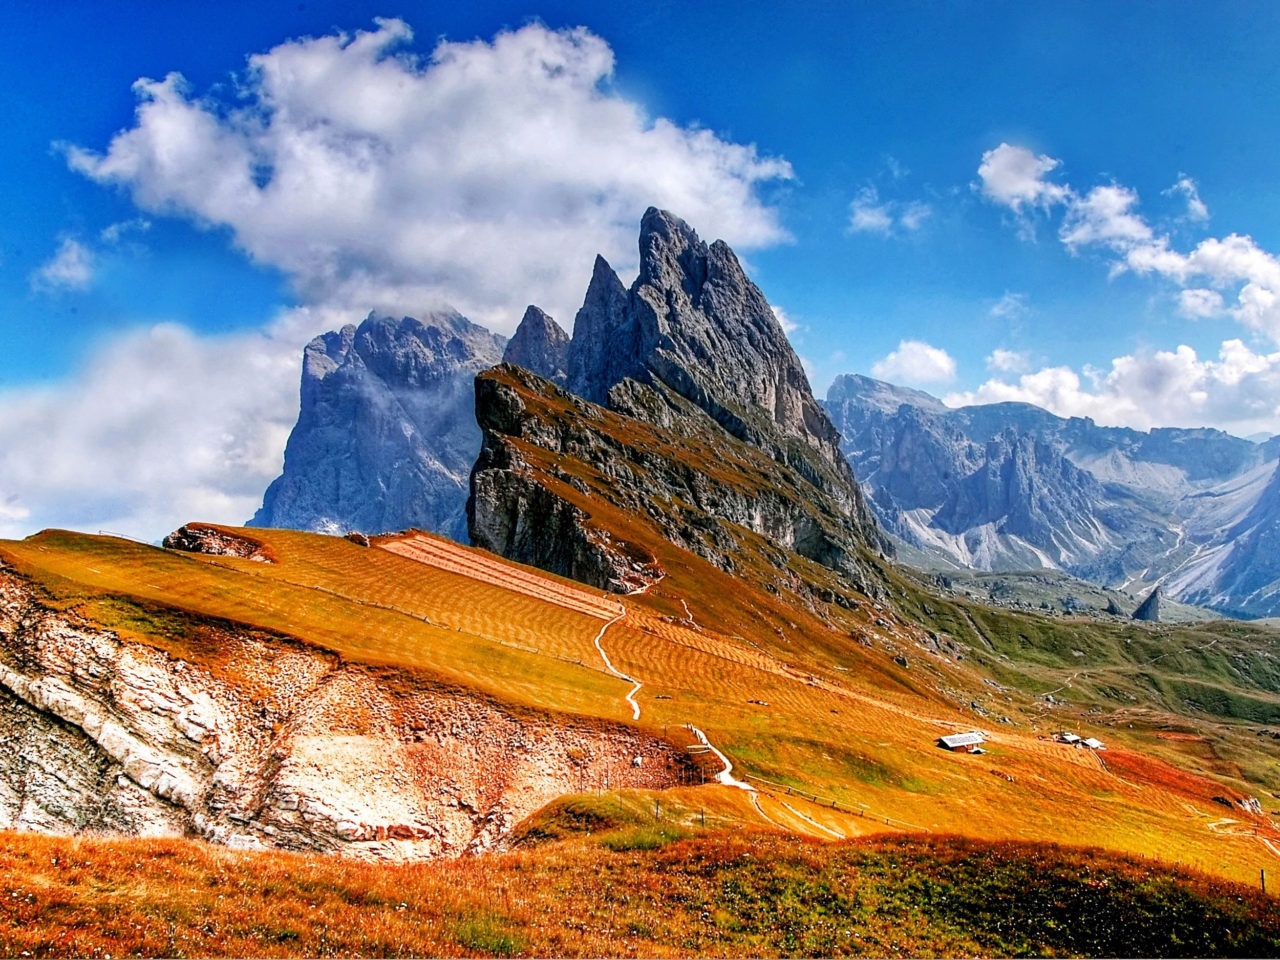 Granite Wallpaper Iphone Trentino Lugares Dolomites Mountains Of Italy Photo